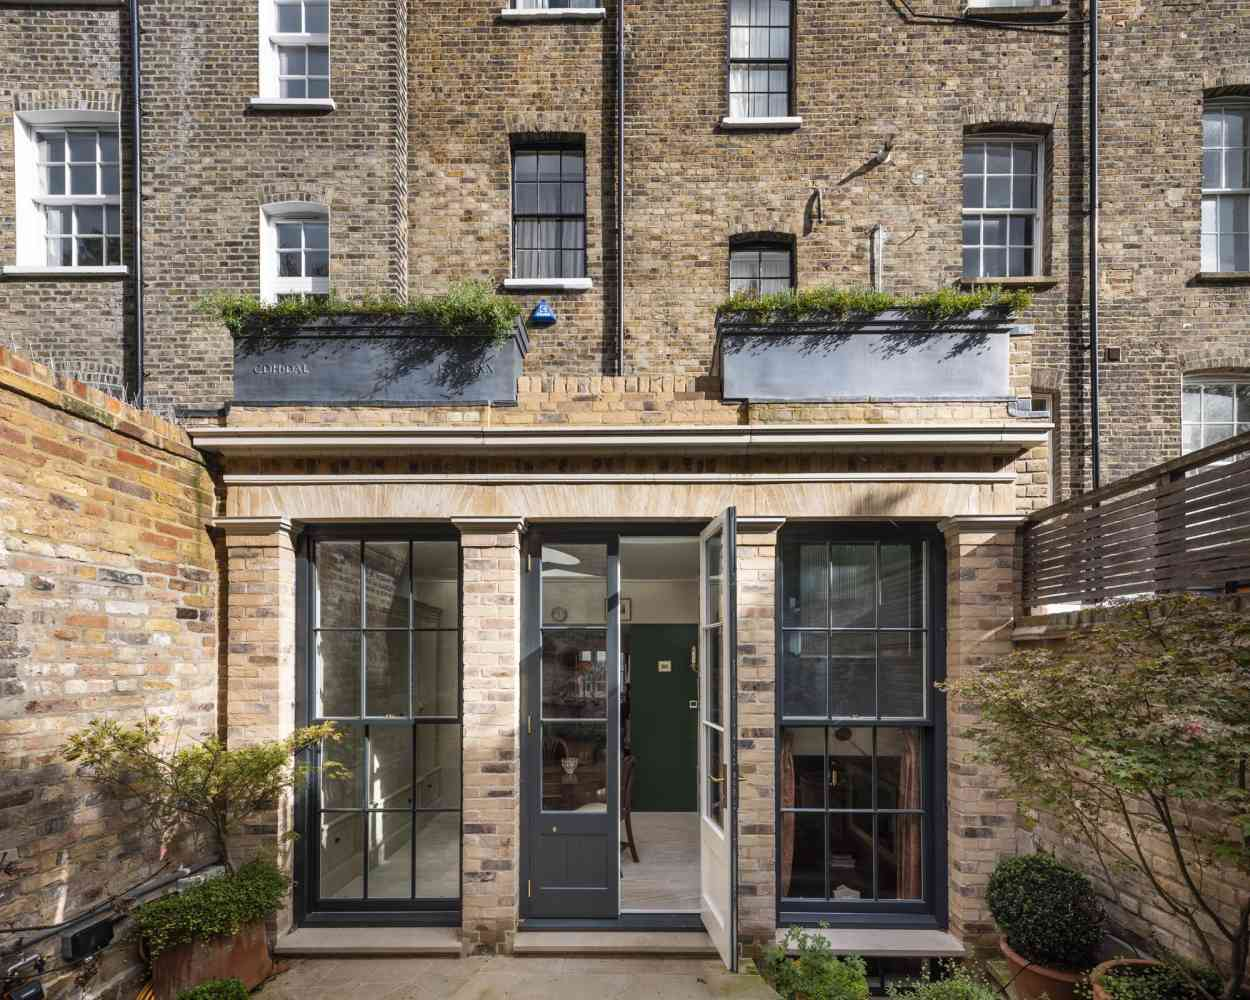 Georgian Townhouse, 2020 - Extension and refurbishment project for a listed building in London by Timothy Smith & Jonathan Taylor Architects. Photo © Anthony Coleman.